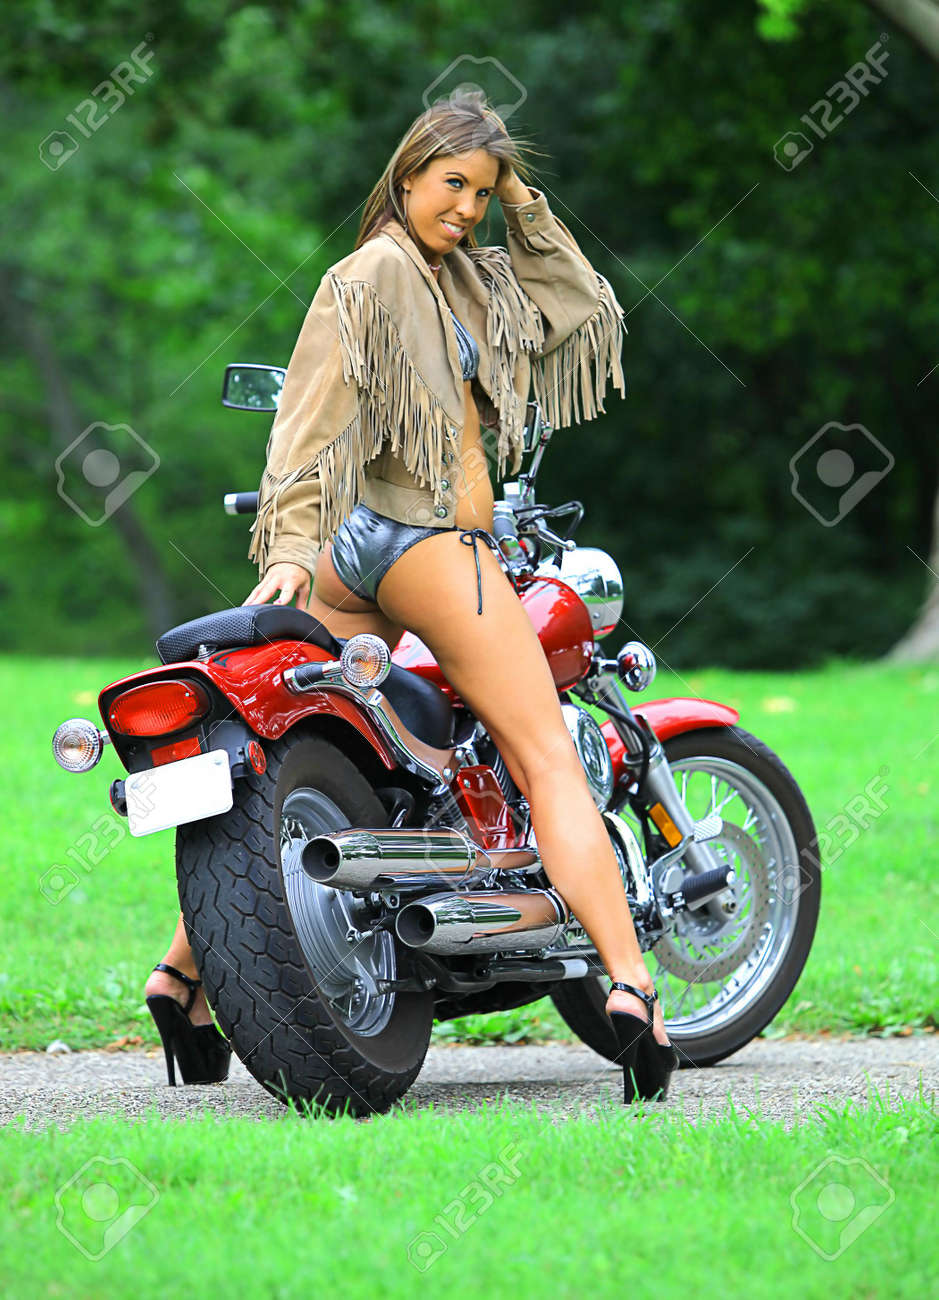 motorcycle babe images  Biker Babe Stock Photos. Royalty Free Biker Babe Images